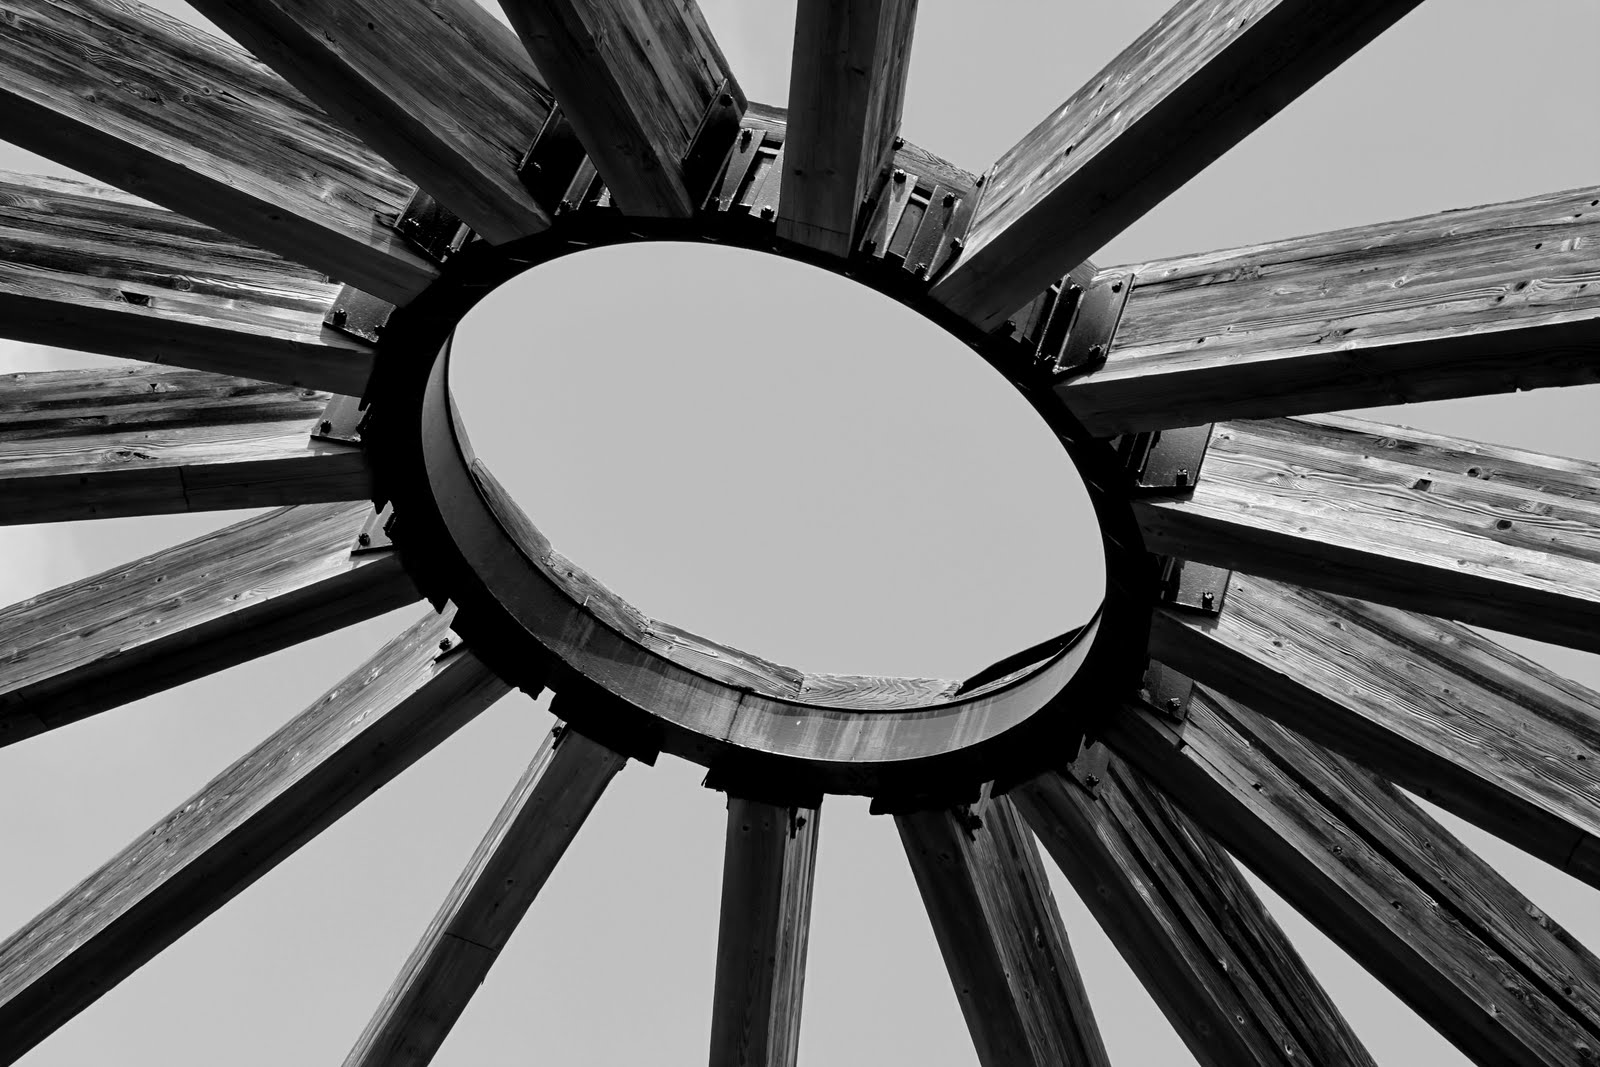 principles of design radial balance adventures in photography